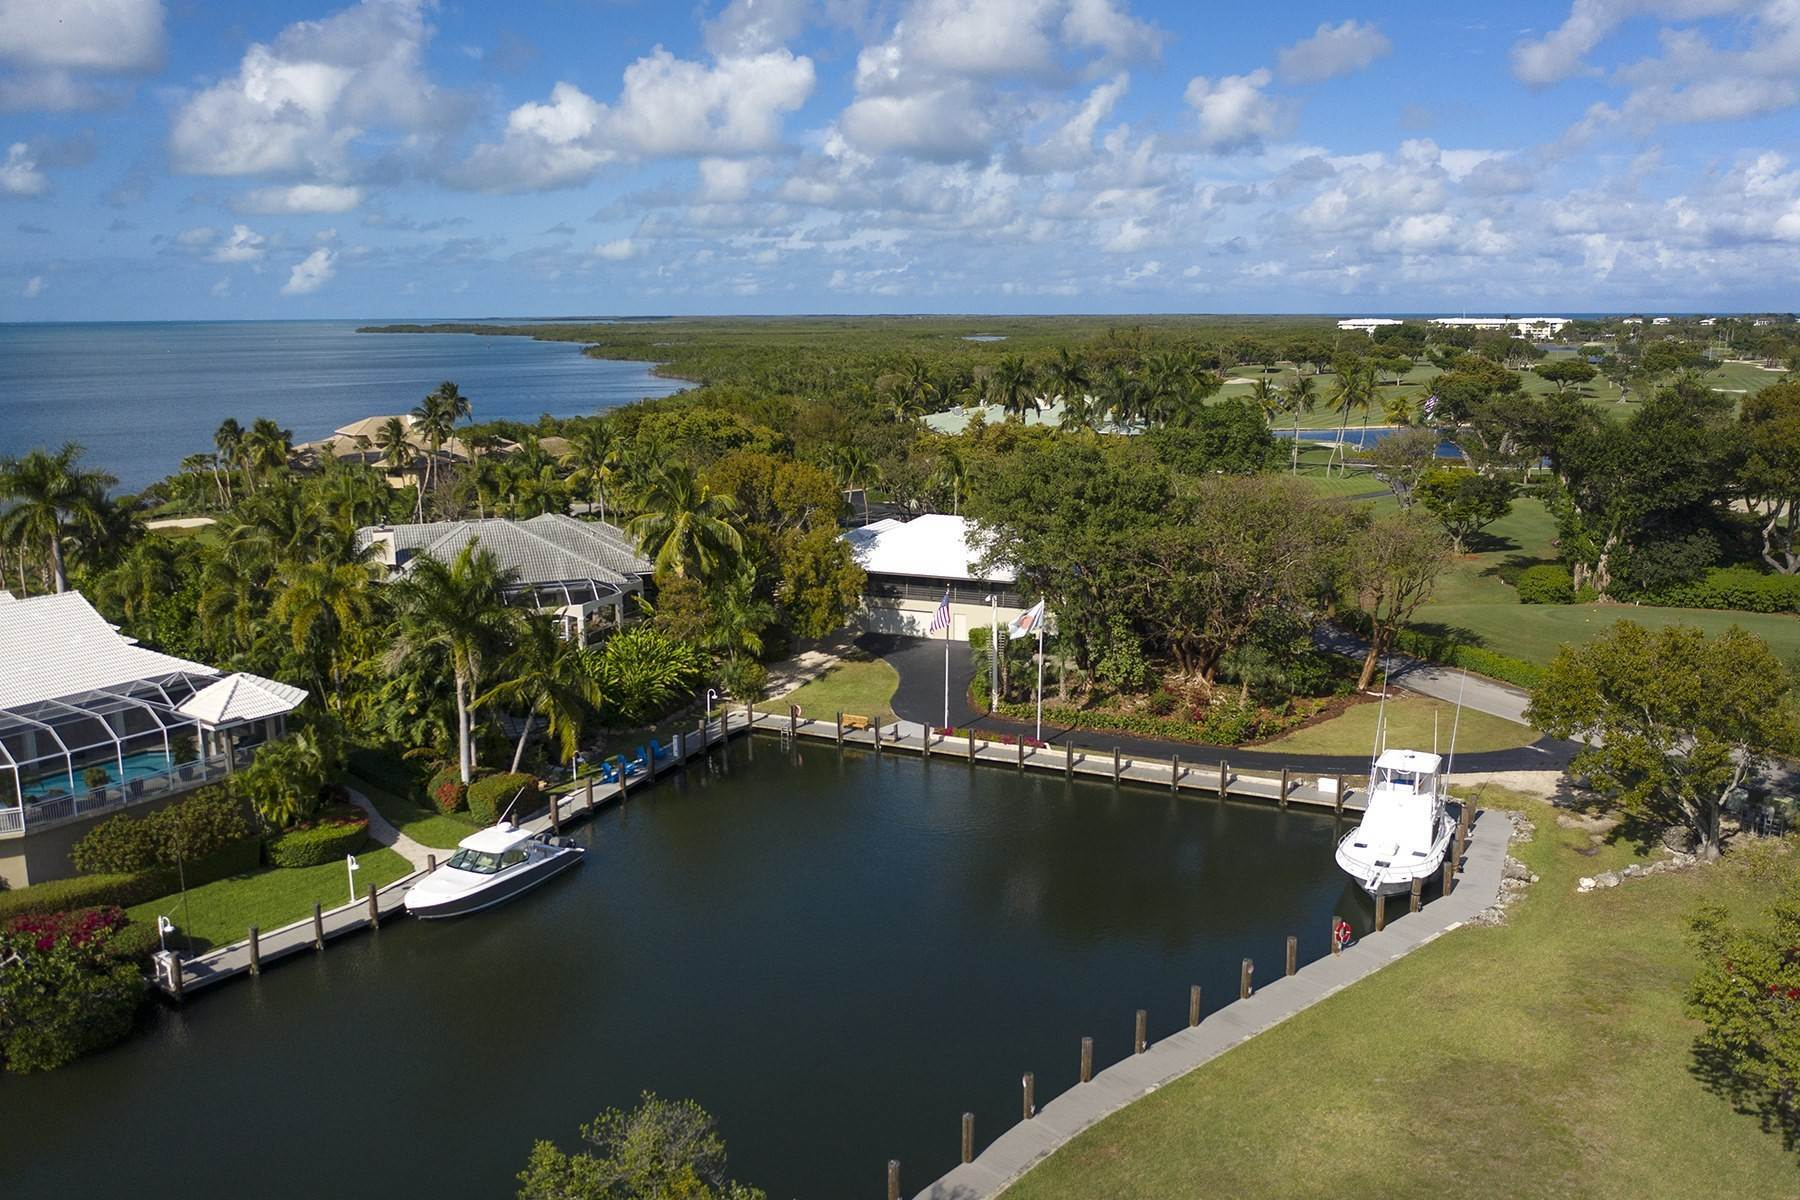 17. Property 为 销售 在 Pumpkin Key - Private Island, Key Largo, FL Pumpkin Key - Private Island 拉哥, 佛罗里达州 33037 美国